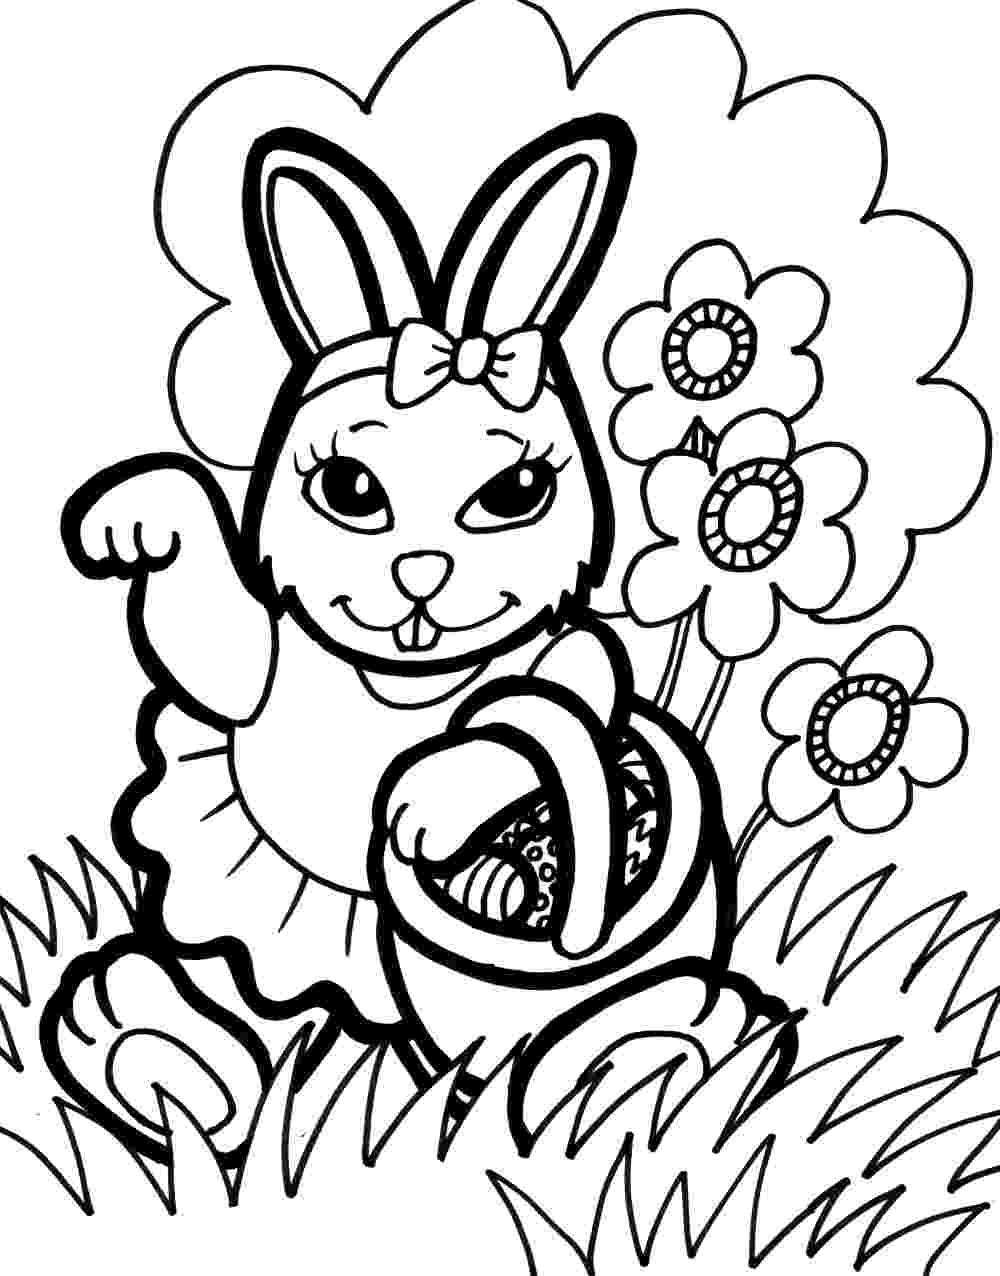 rabbit coloring pages printable bunny coloring pages best coloring pages for kids coloring pages rabbit printable